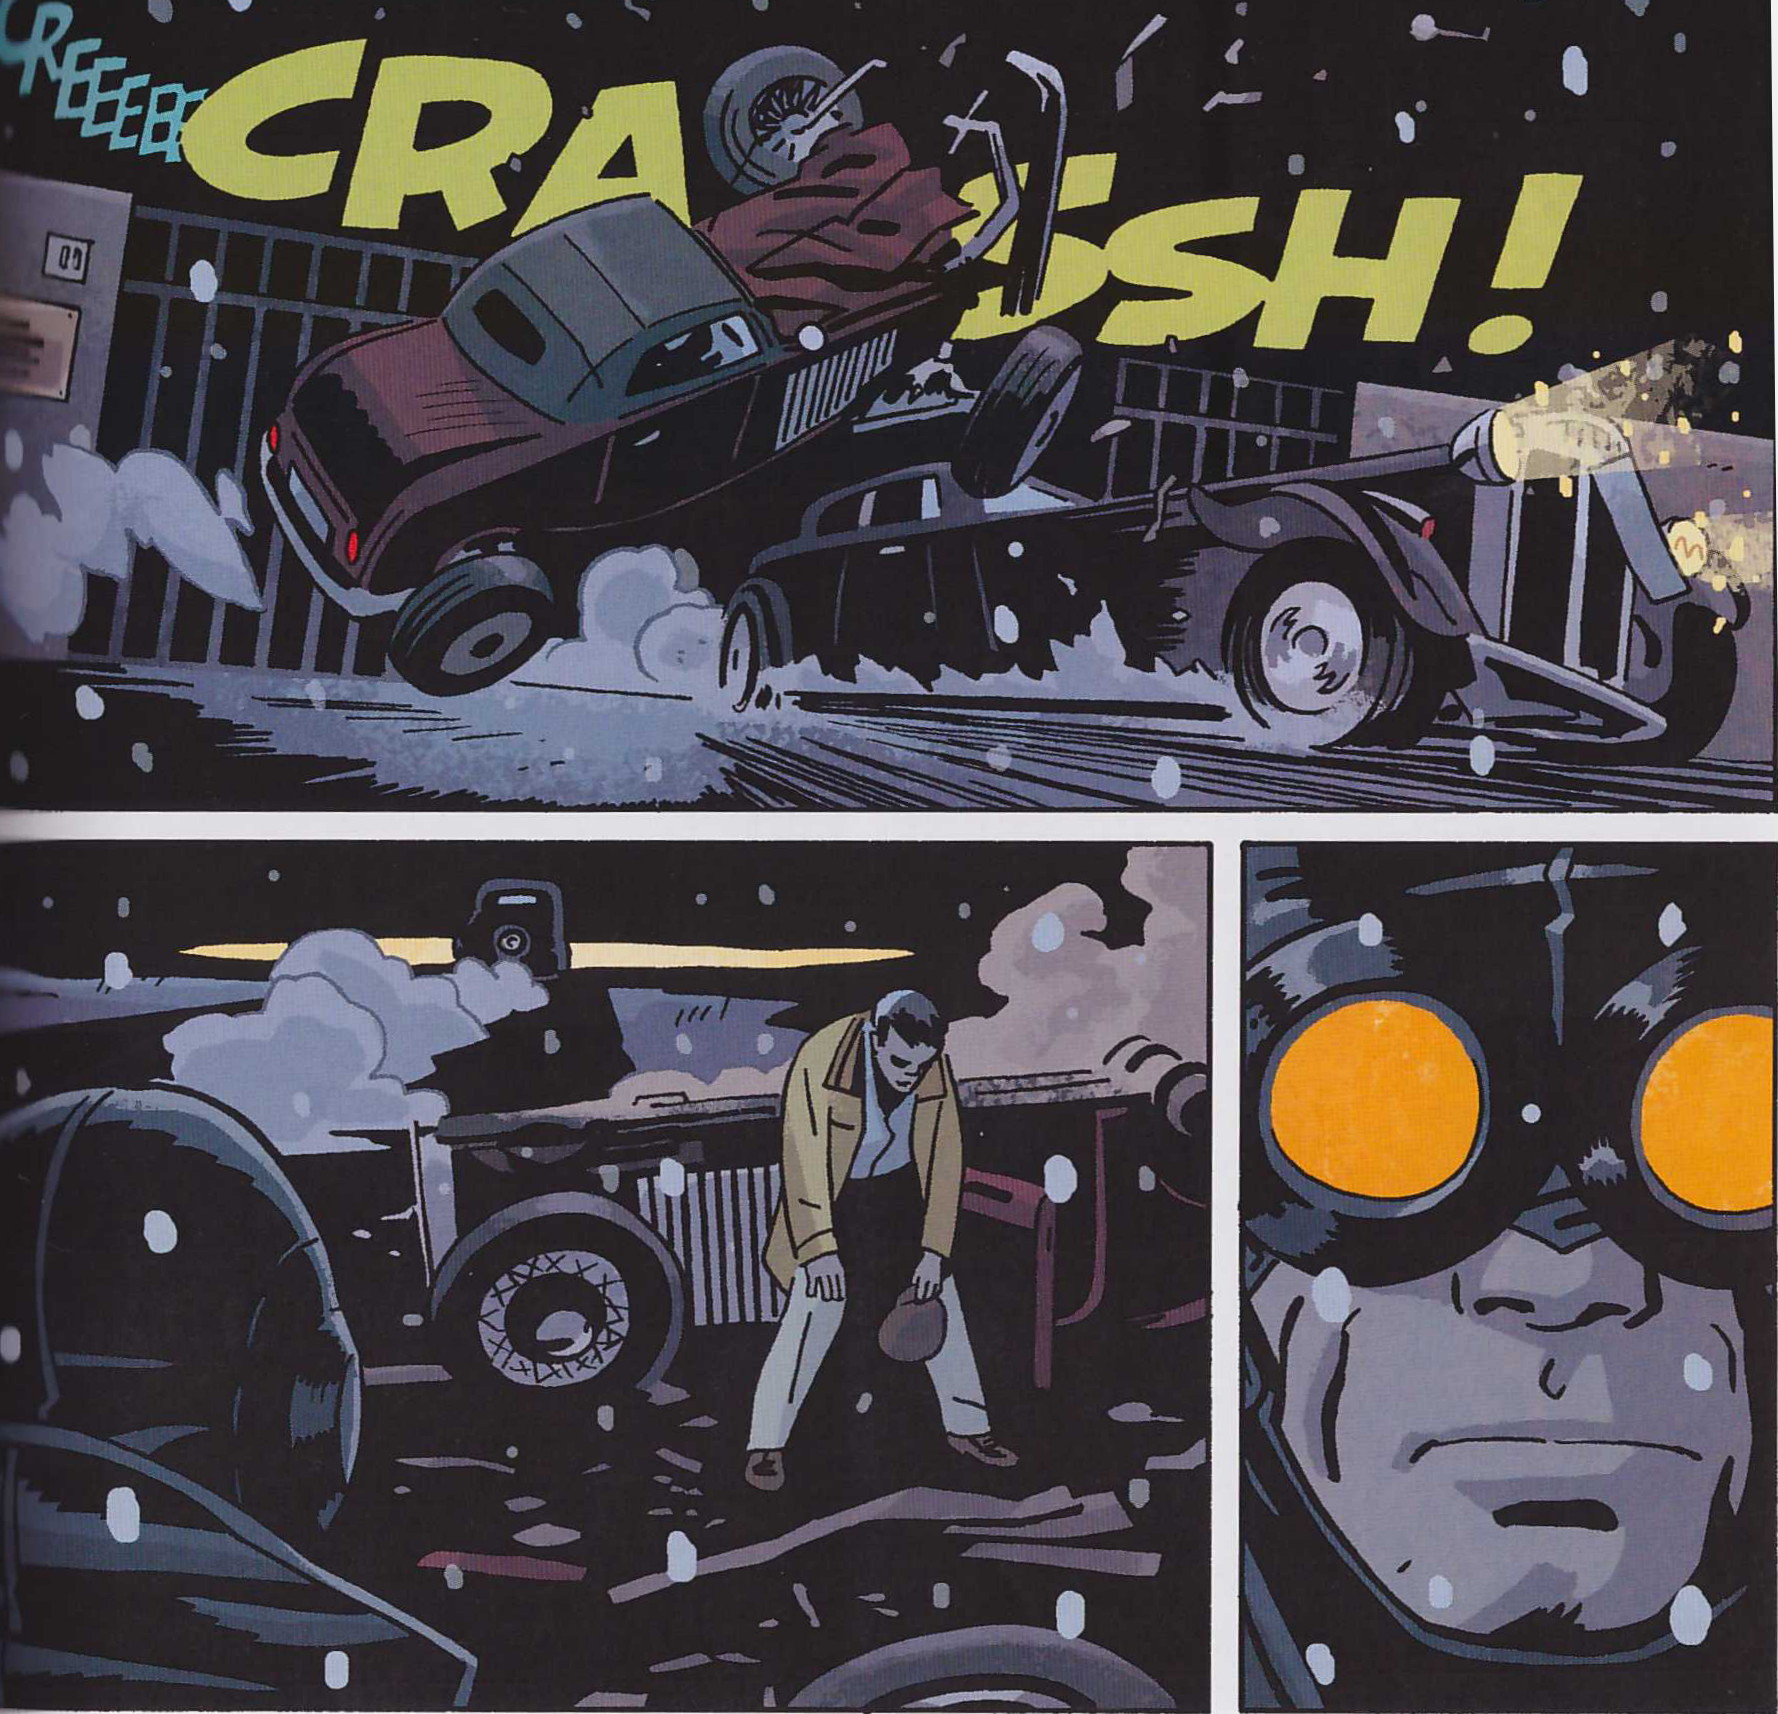 Lobster Johnson The Burning Hand review